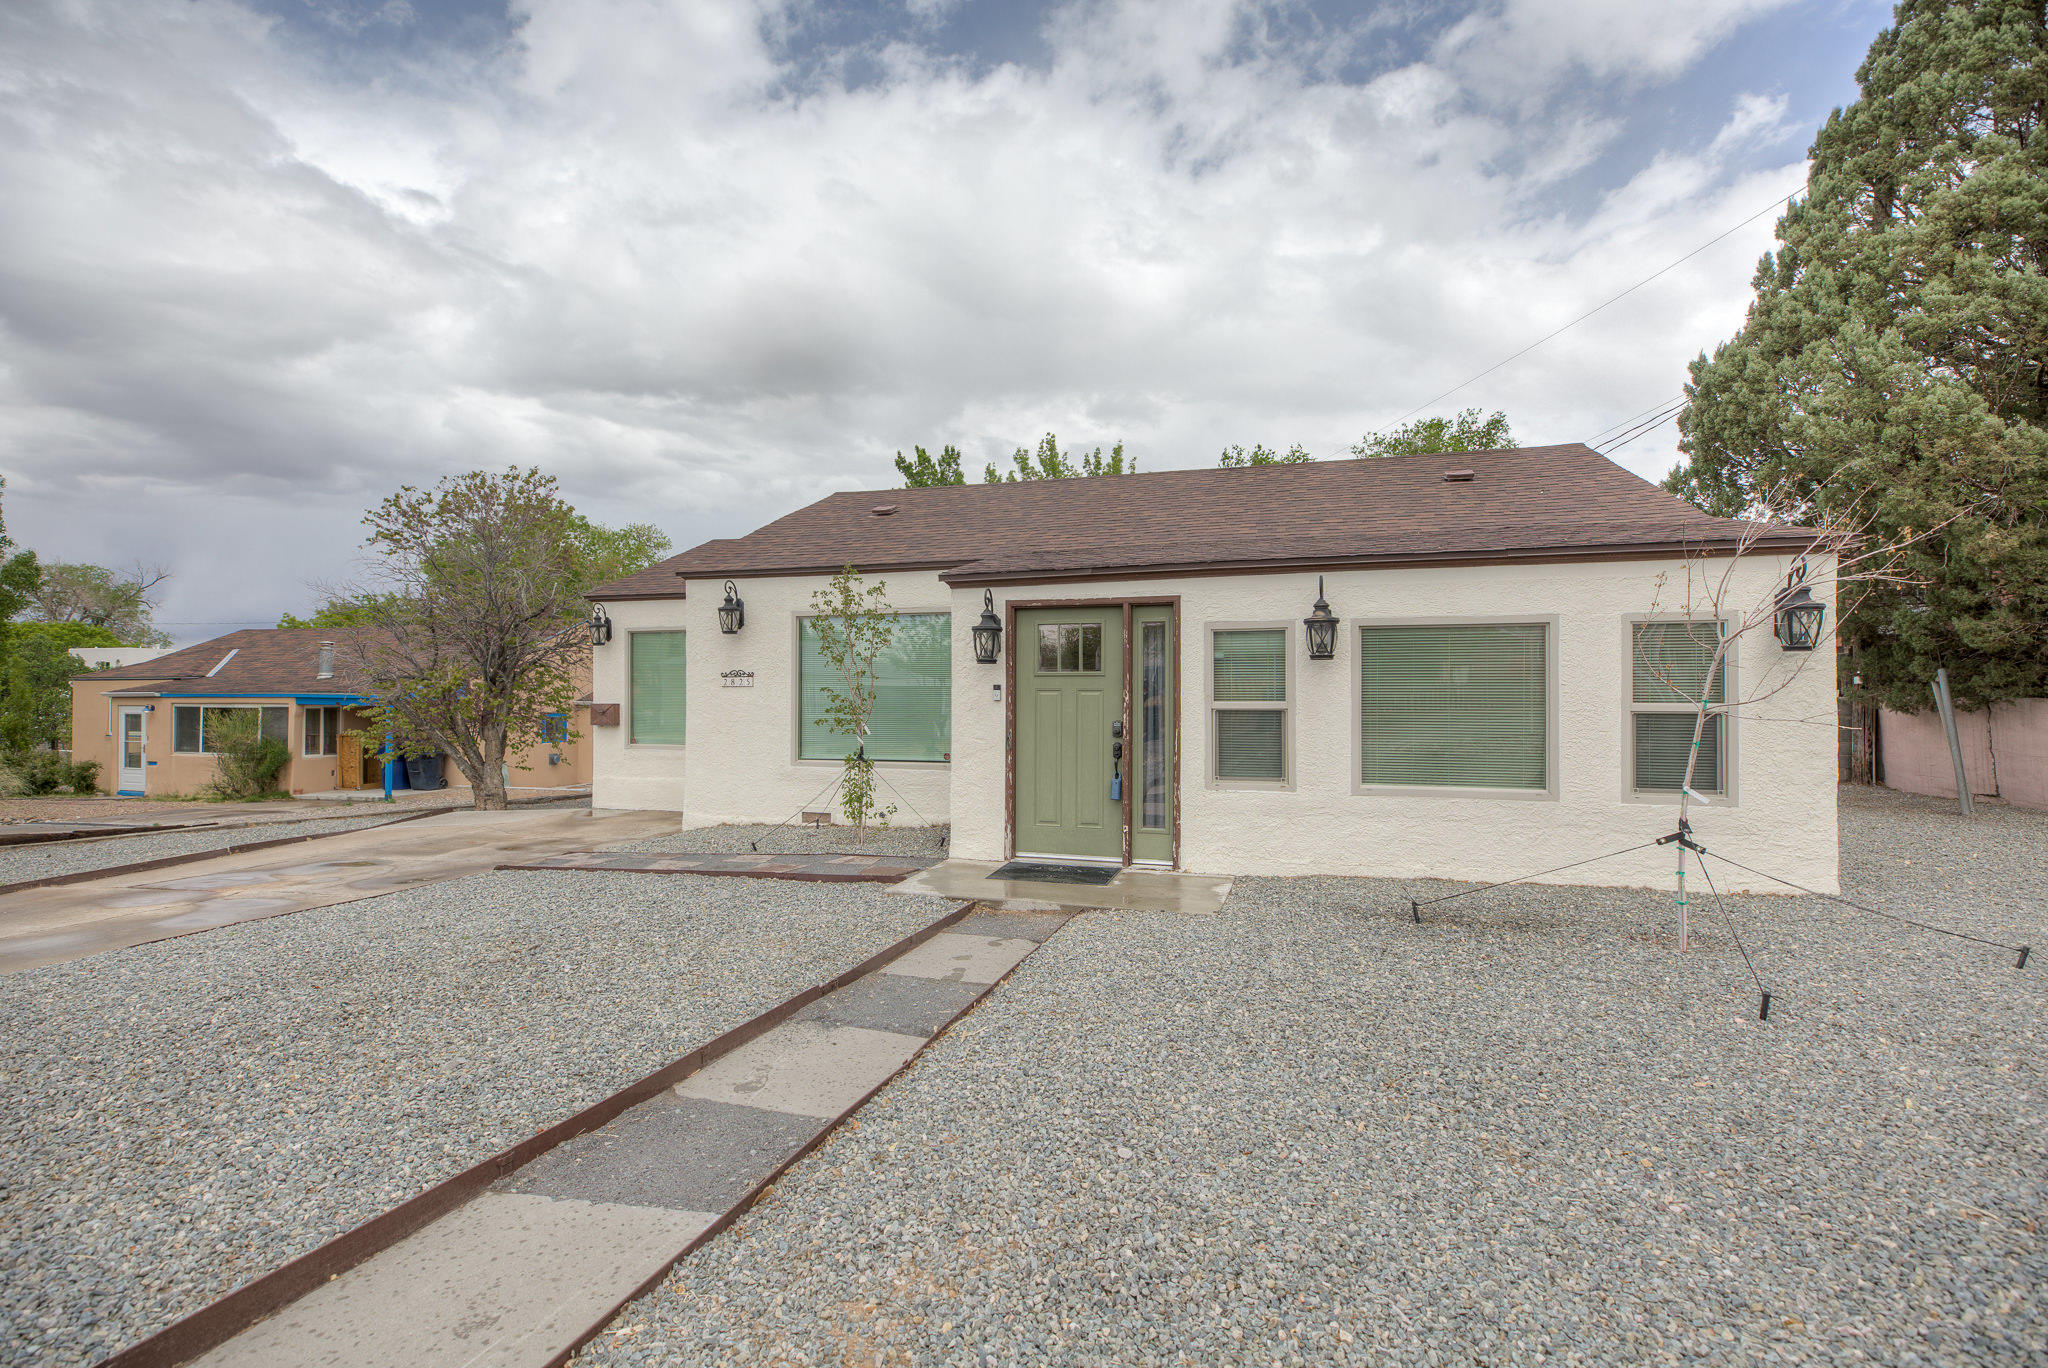 I'm really very cute! This updated home in the surrounding Nob Hill area will impress! Short distance to Hyder Park, UNM campus, Bandolier Elementary, Sandia Labs, Kirtland AFB, and local Hospitals. The Gourmet Kitchen is a wow factor with stainless steel appliances, granite countertops, new tile backsplash, new soft-close cabinets, original refinished wood floors, updated bathrooms, easy low maintenance landscaping, newer roof, updated plumbing and electrical, AC/heating combo units for temperature control and comfort! Large master suite with private deck is perfect for outdoor dining and relaxation! This home is a dream come true so don't wait another minute!